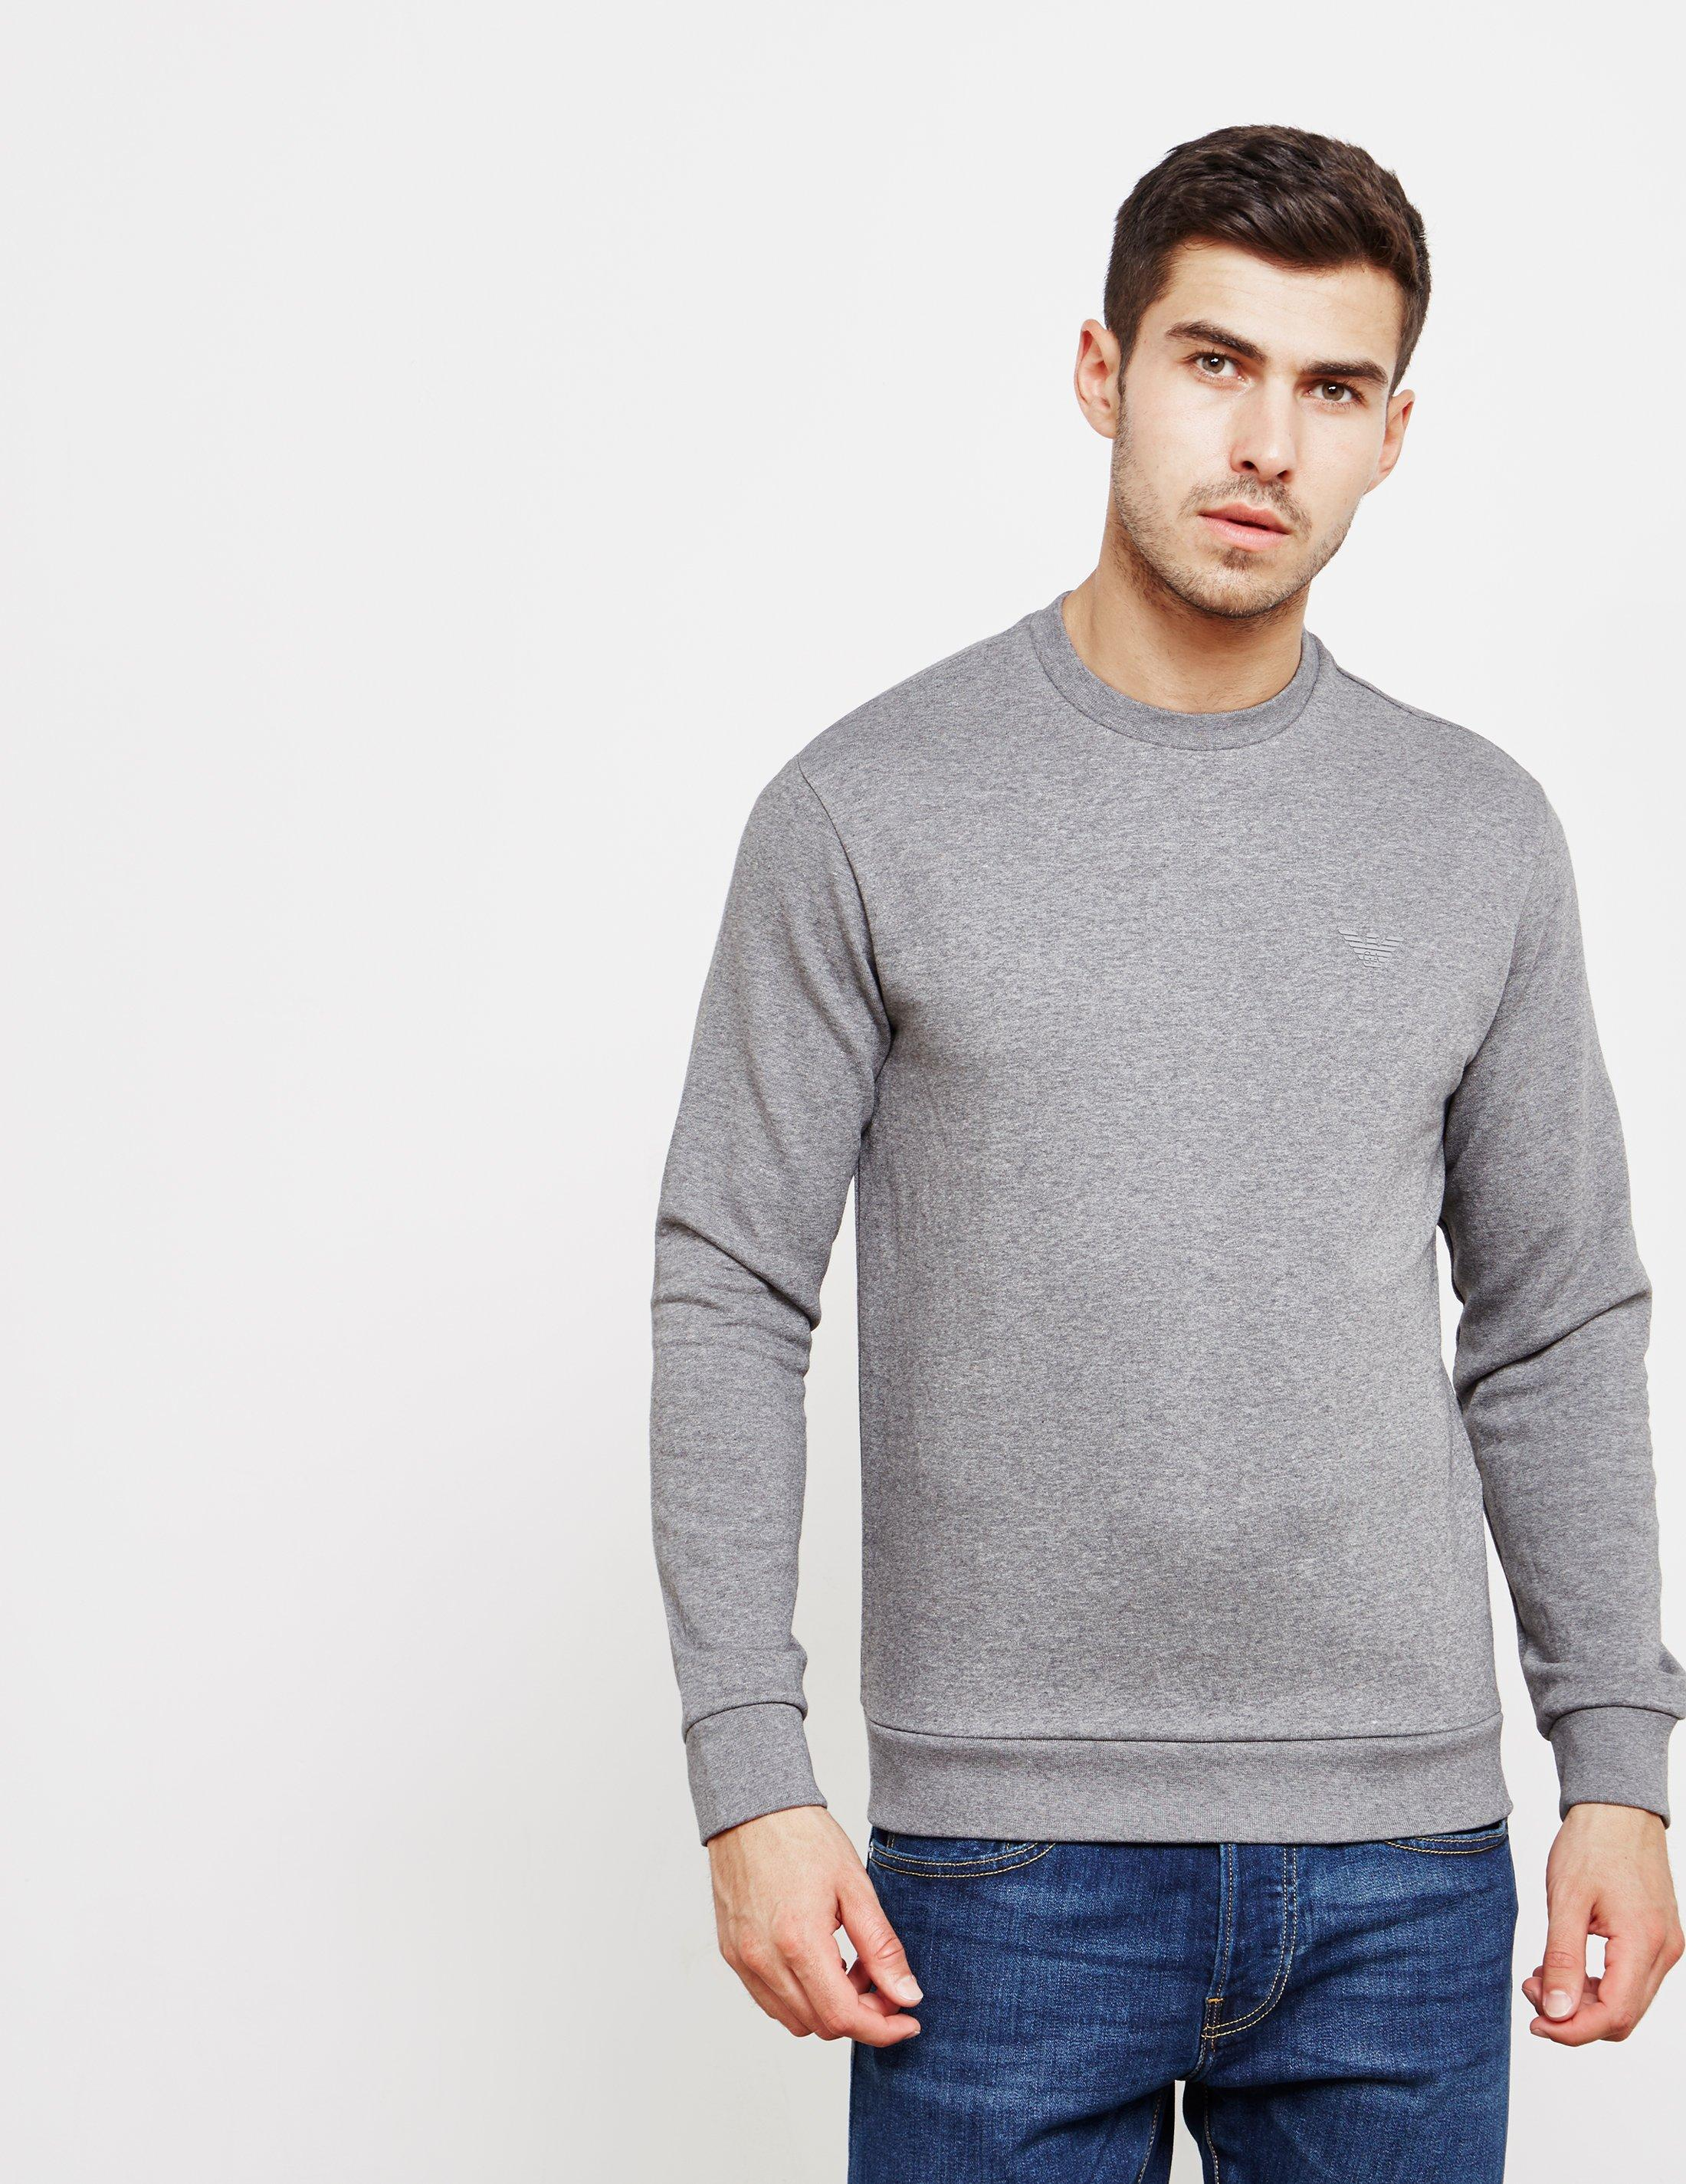 39ecac4aaa4 Emporio Armani Mens Basic Crew Sweatshirt Grey in Gray for Men - Lyst